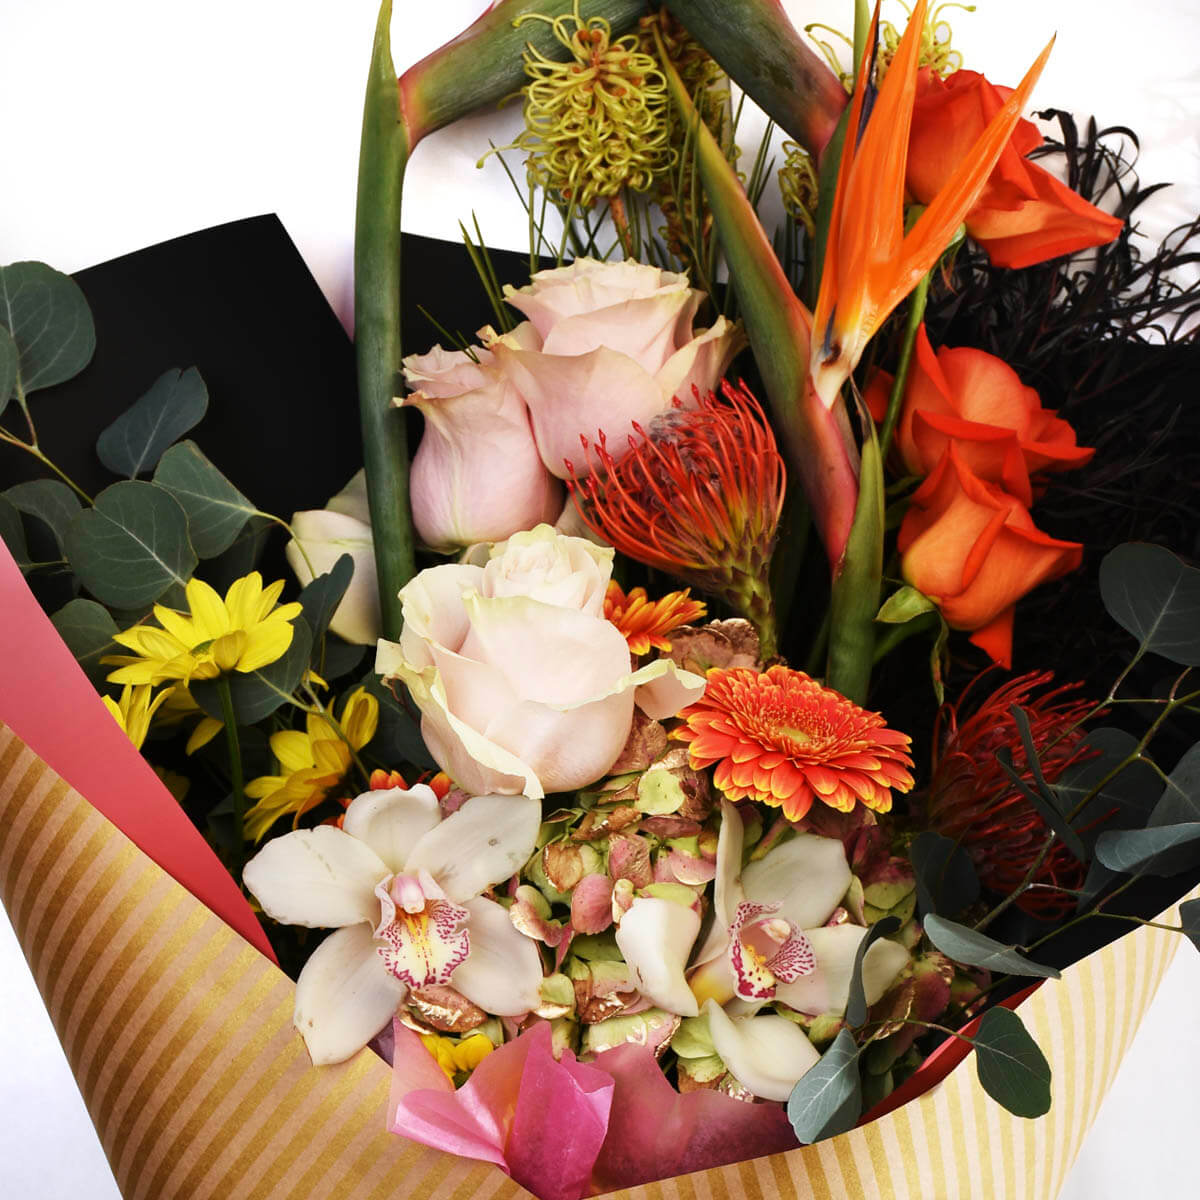 A bouquet of mix flowers like Bird of Paradise.